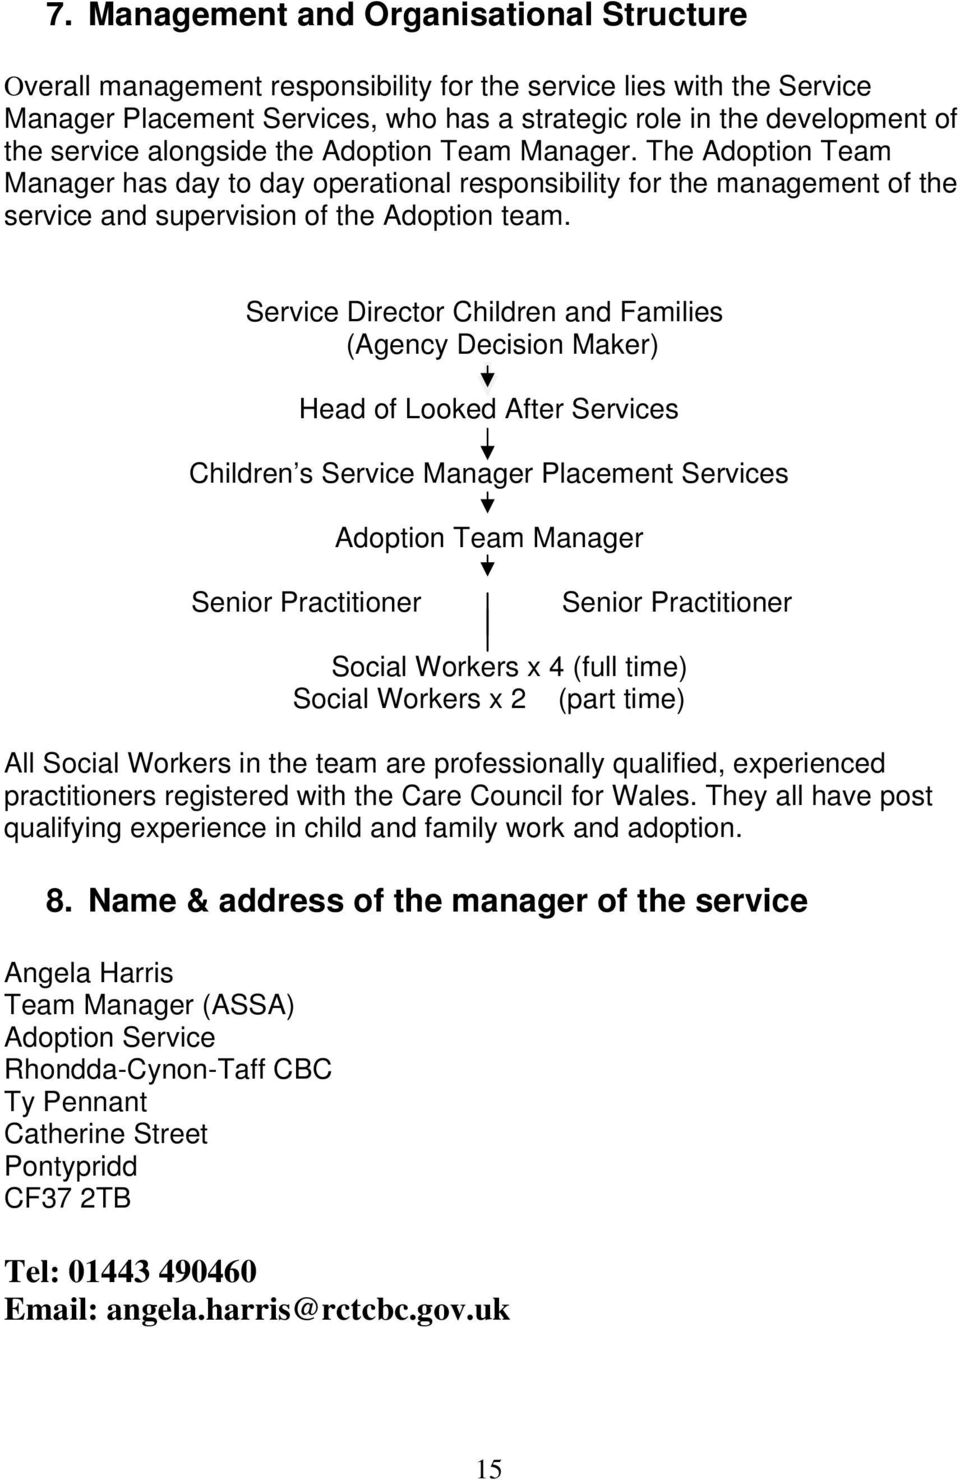 Service Director Children and Families (Agency Decision Maker) Head of Looked After Services Children s Service Manager Placement Services Adoption Team Manager Senior Practitioner Senior